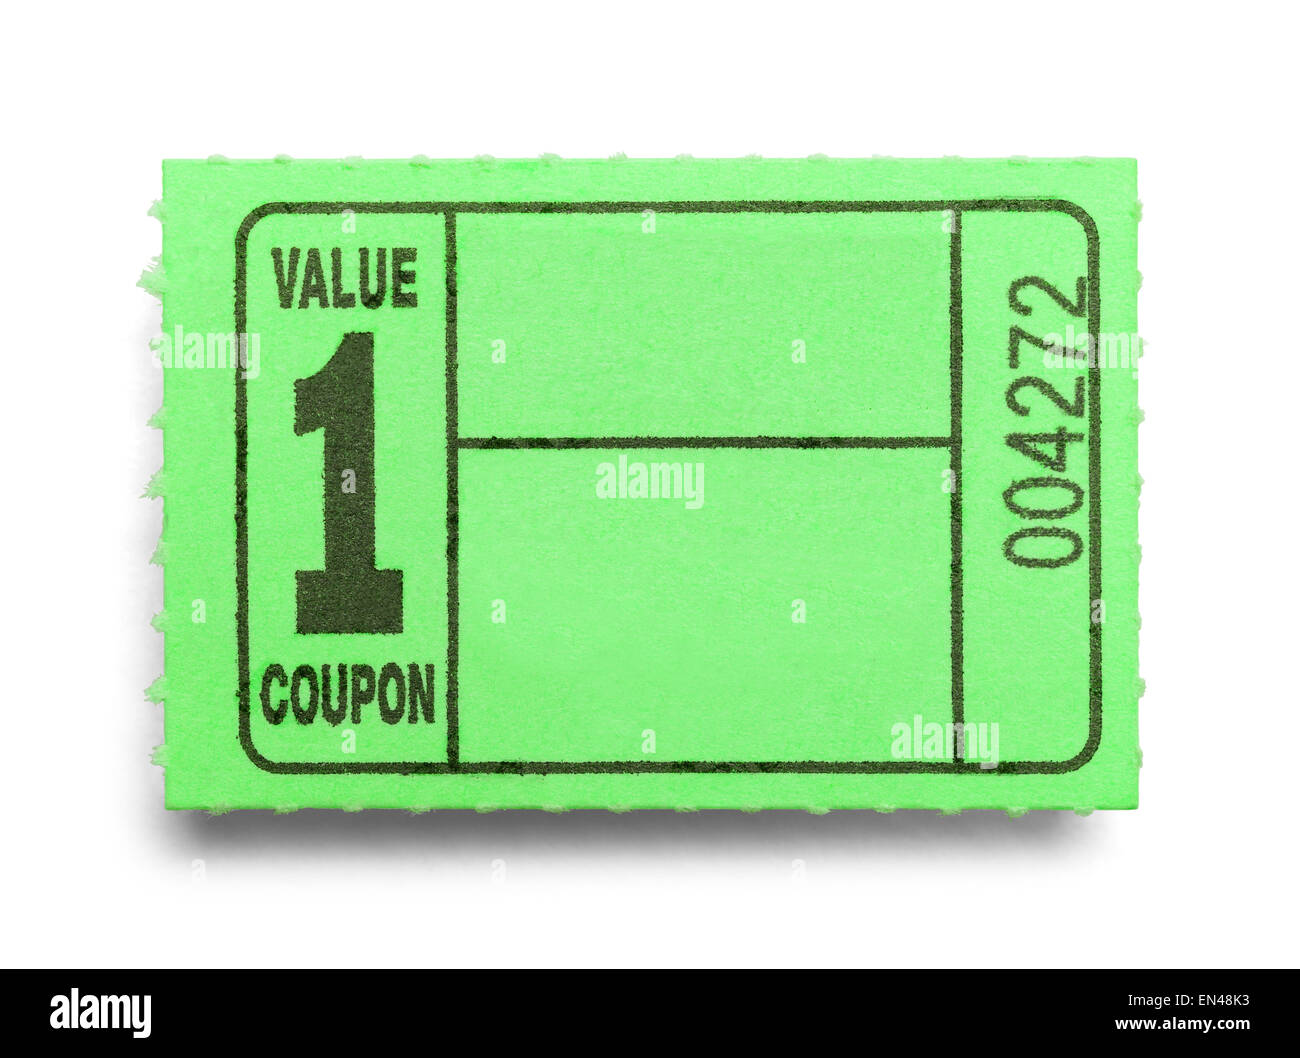 Small Green Coupon Ticket Isolated on a White Background. - Stock Image